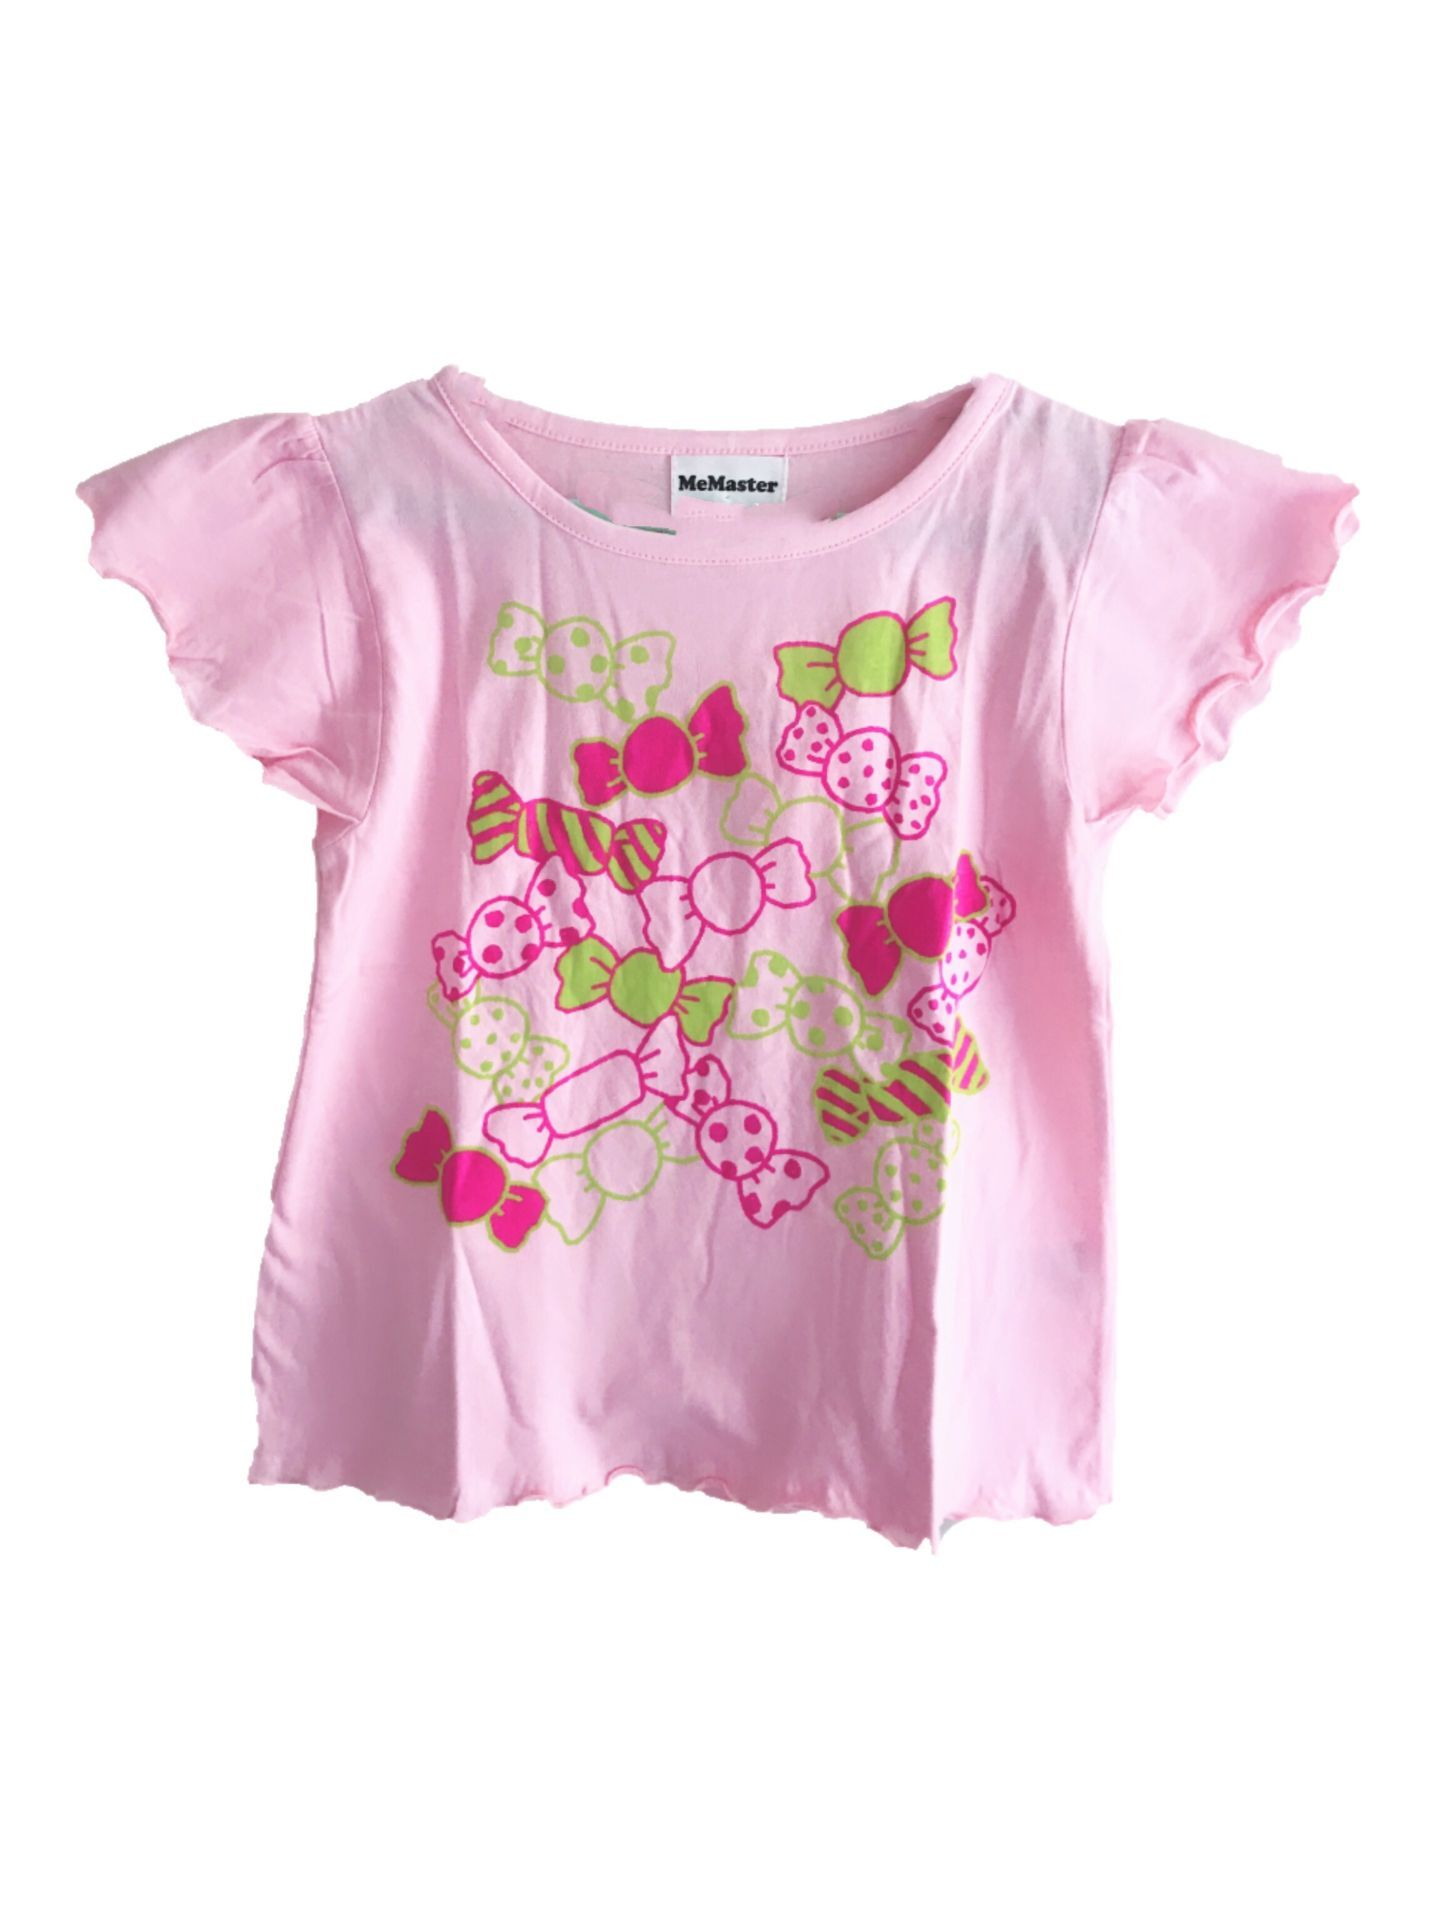 184001 girls short sleeve tee - pink